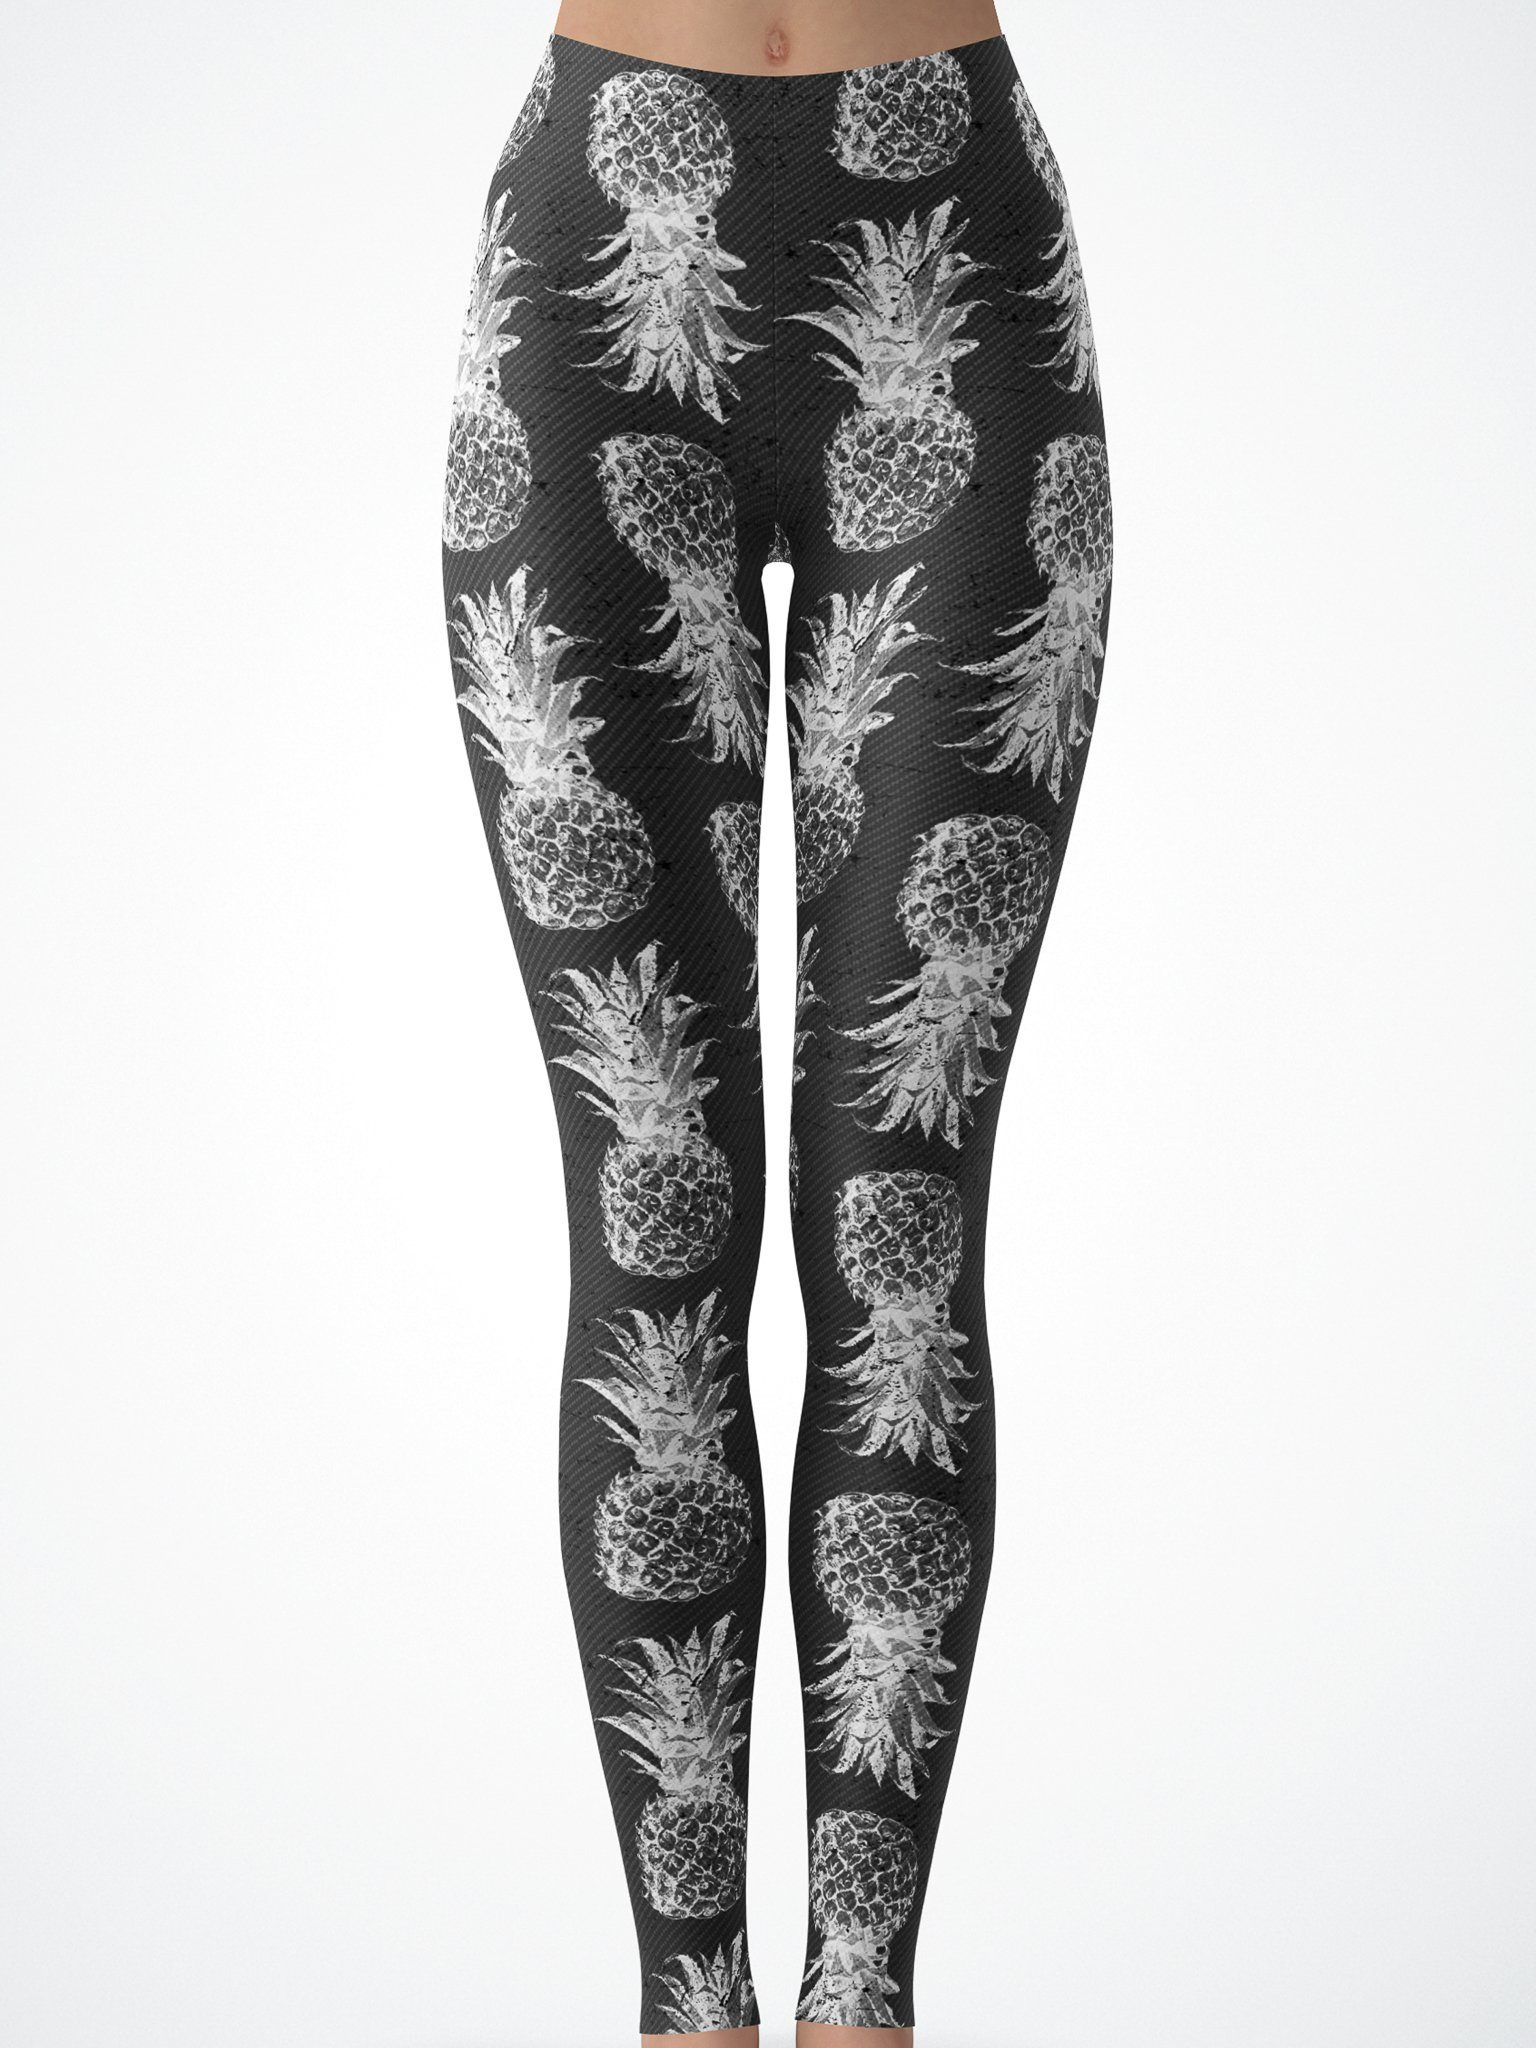 Black and White Pineapple Tights Tights T6